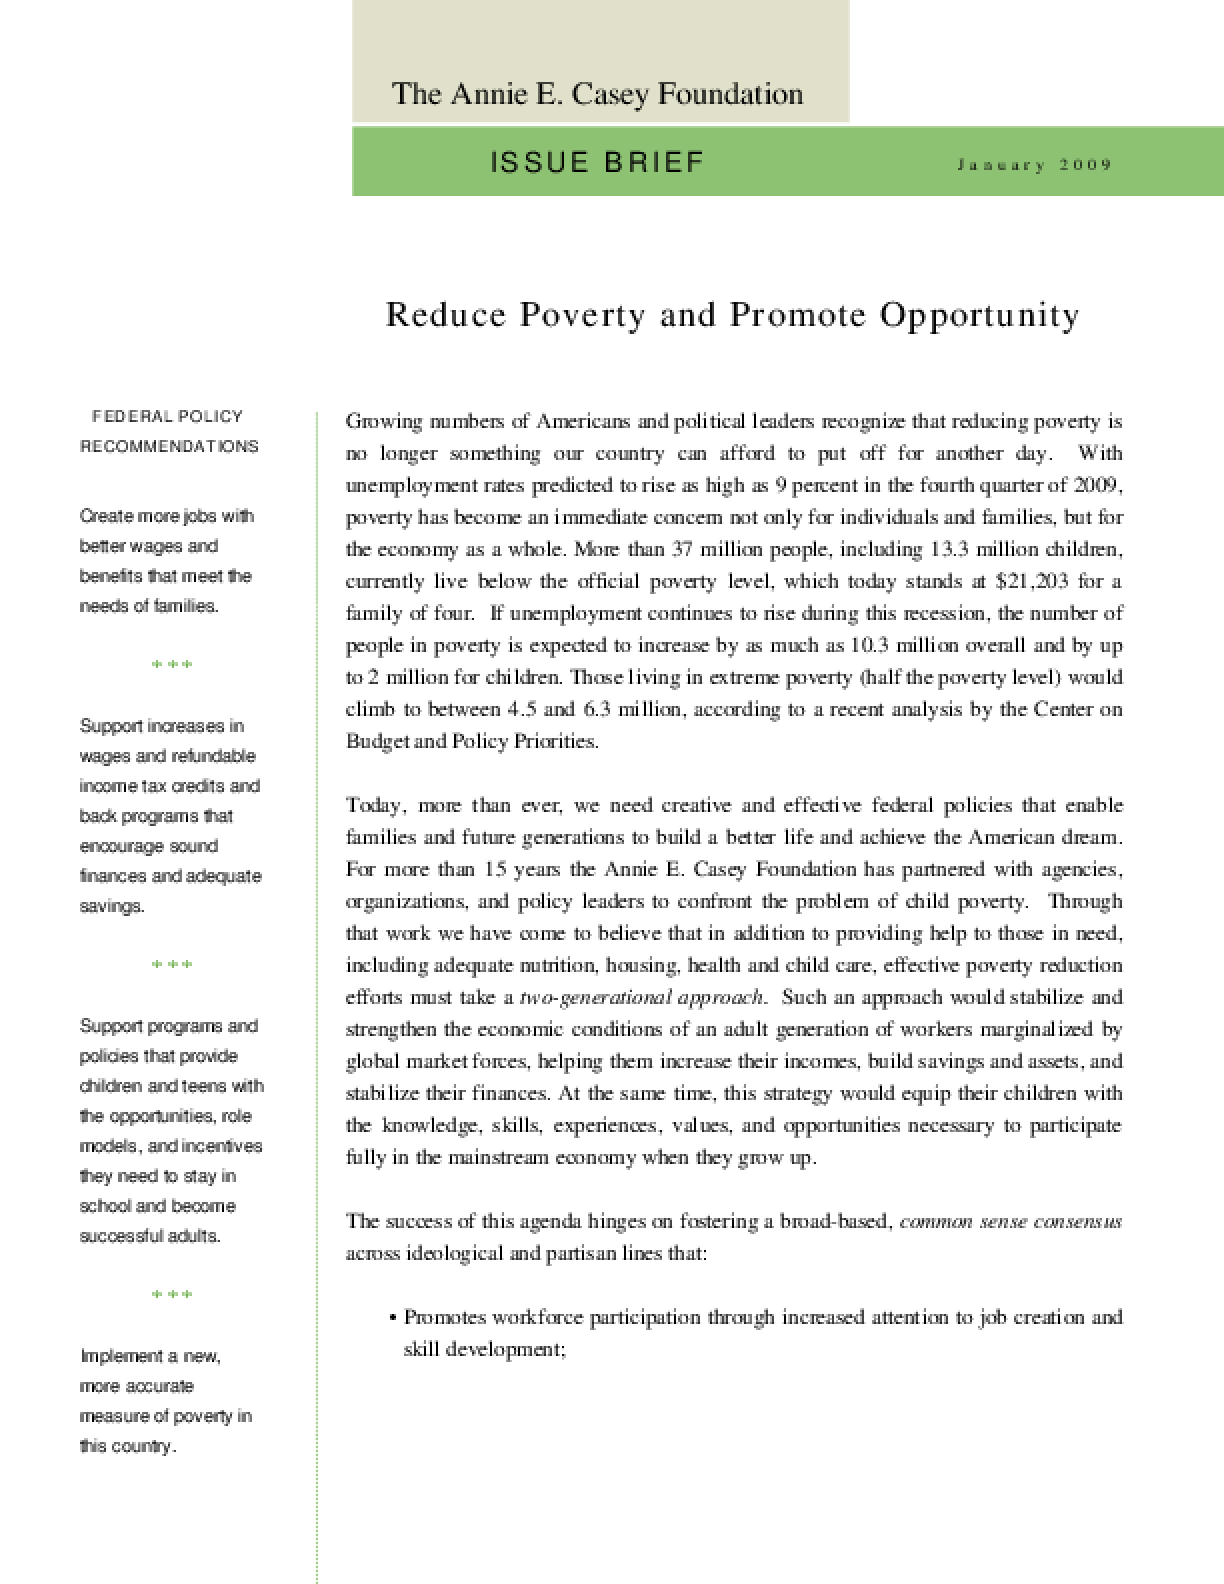 Reduce Poverty and Promote Opportunity